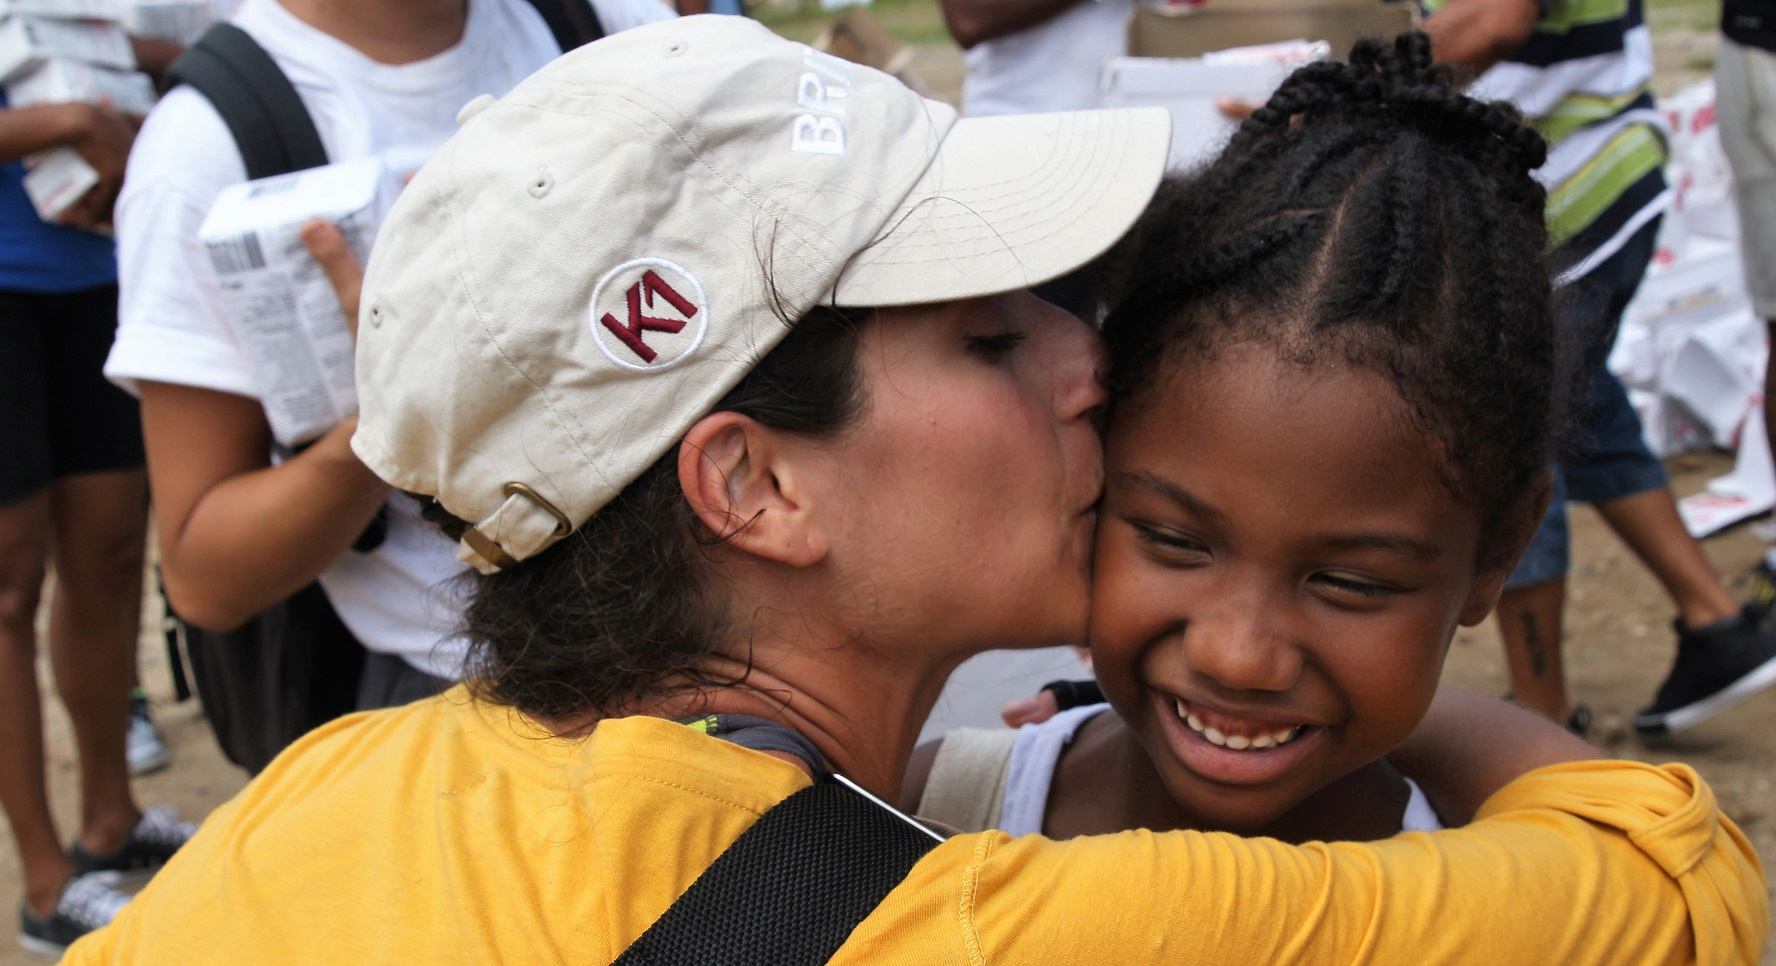 K1 volunteer enjoying a sweet moment during a distribution